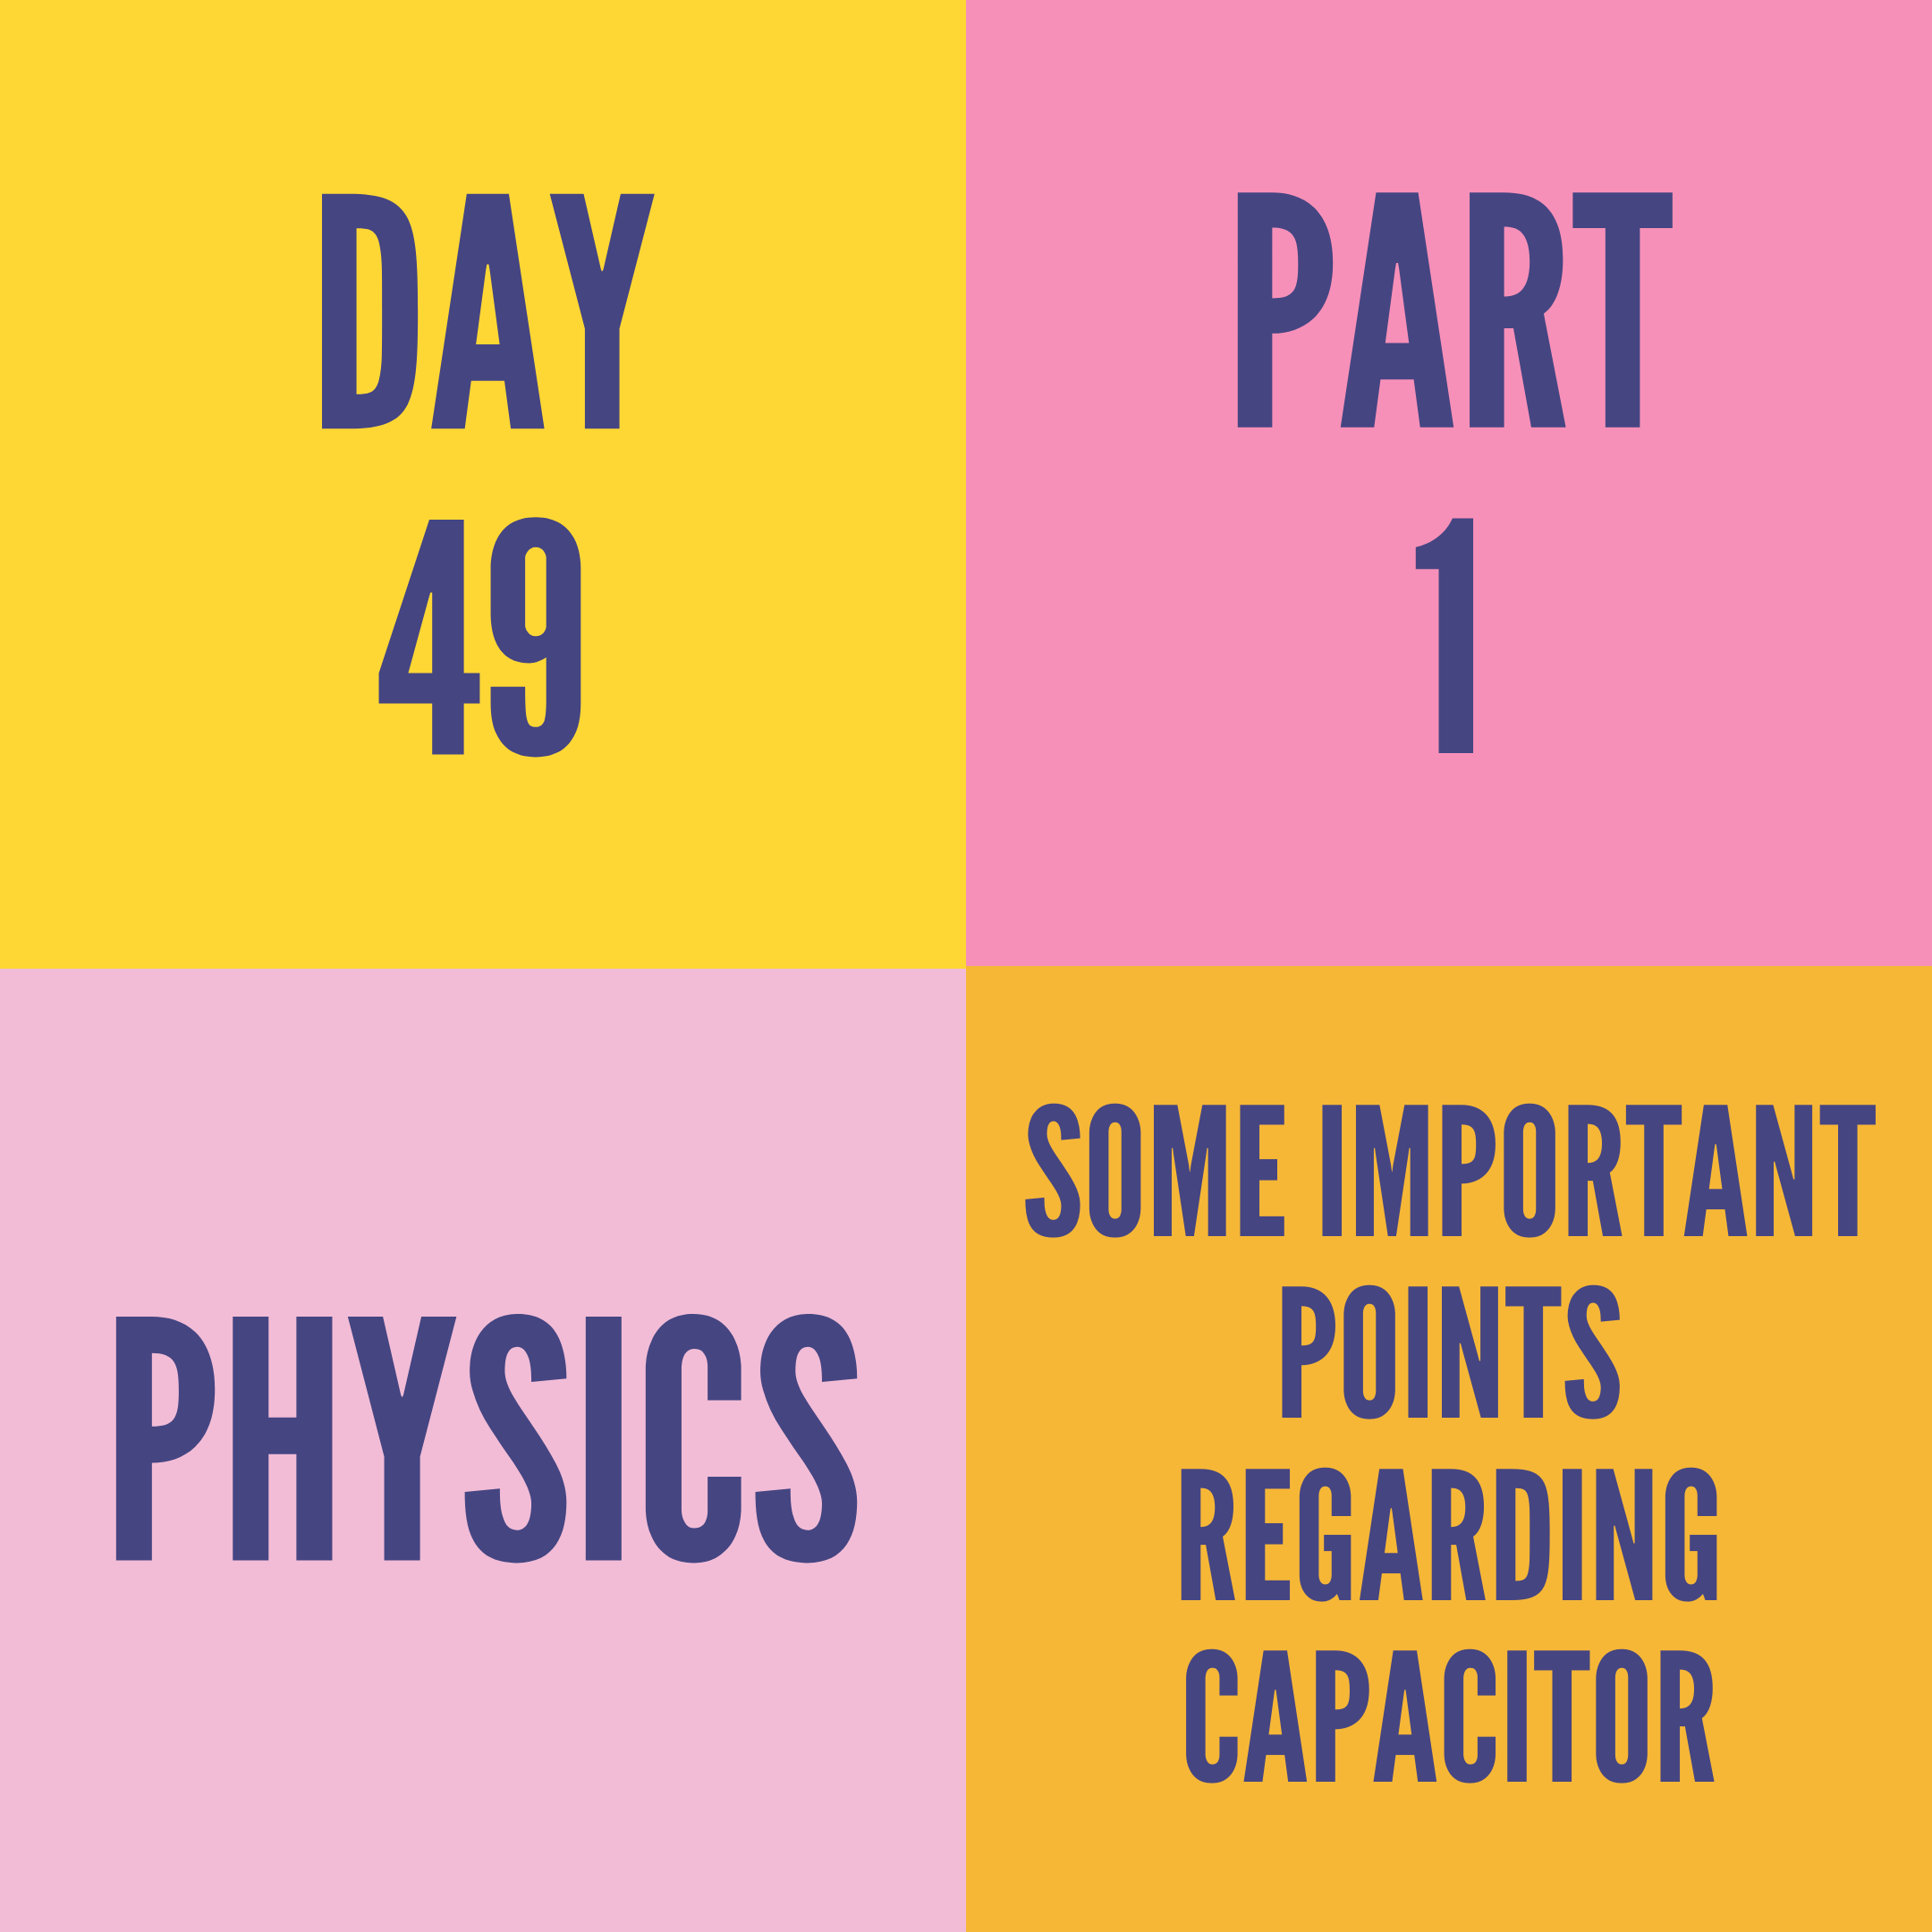 DAY-49 PART-1  SOME IMPORTANT POINTS REGARDING CAPACITOR